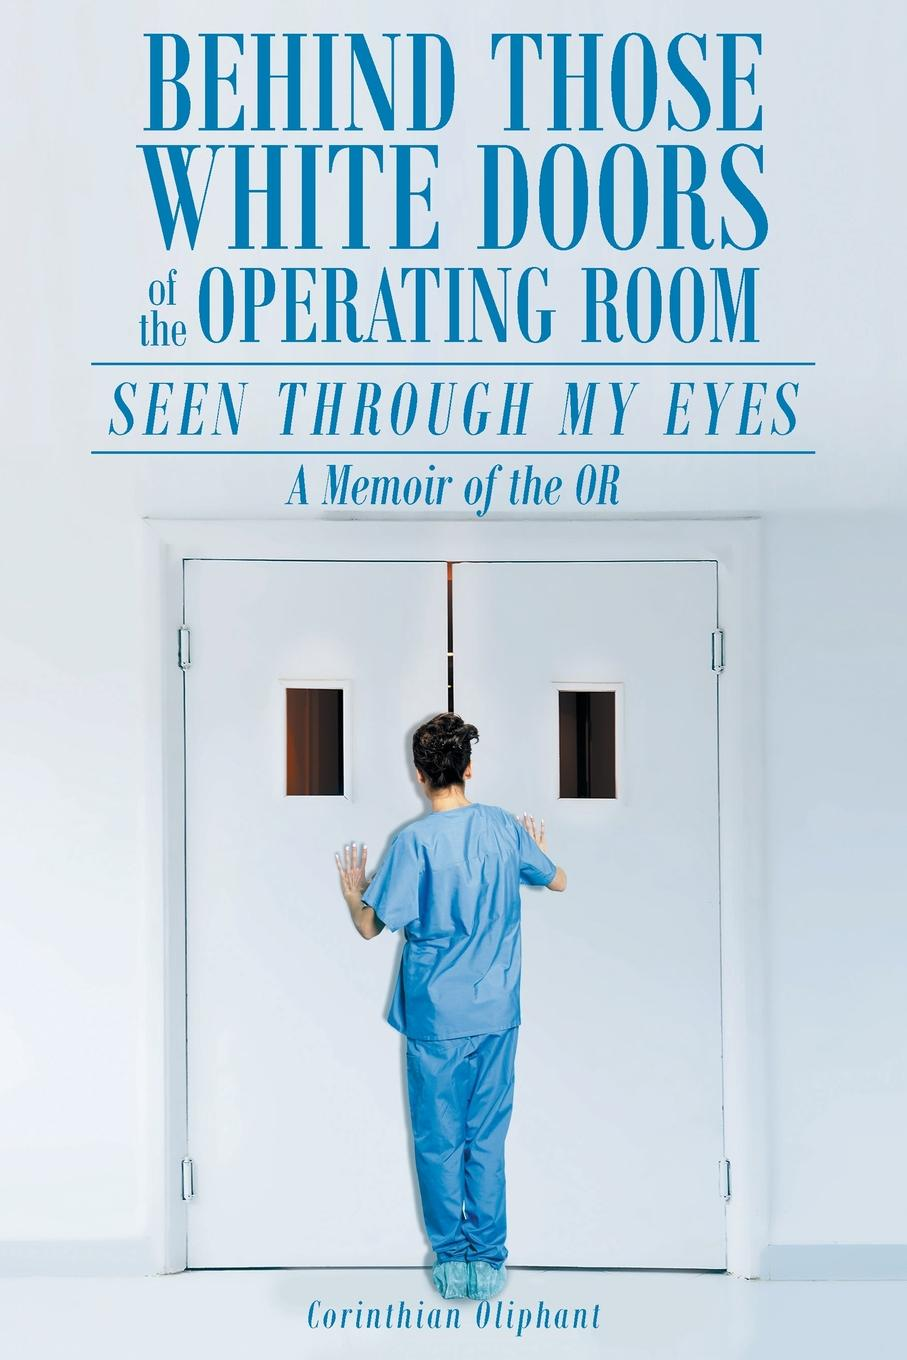 Behind Those White Doors of the Operating Room-Seen through My Eyes. a Memoir of the OR.